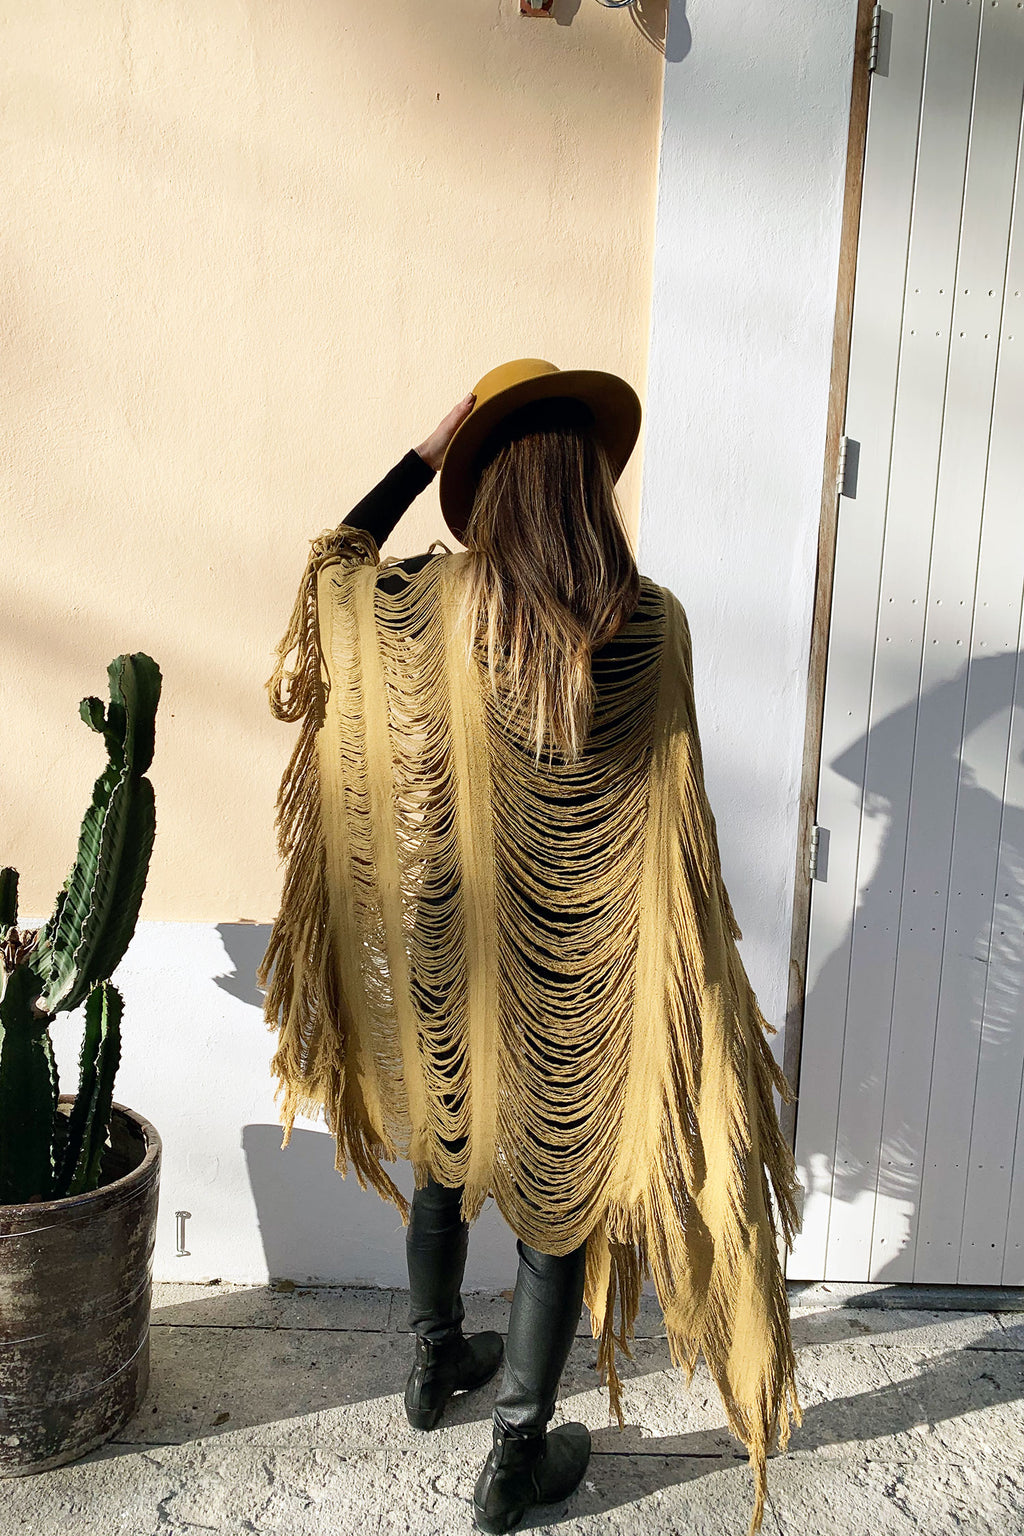 Malik Kaftan Dress Poncho Shredded Raw Silk Tassels in Sage